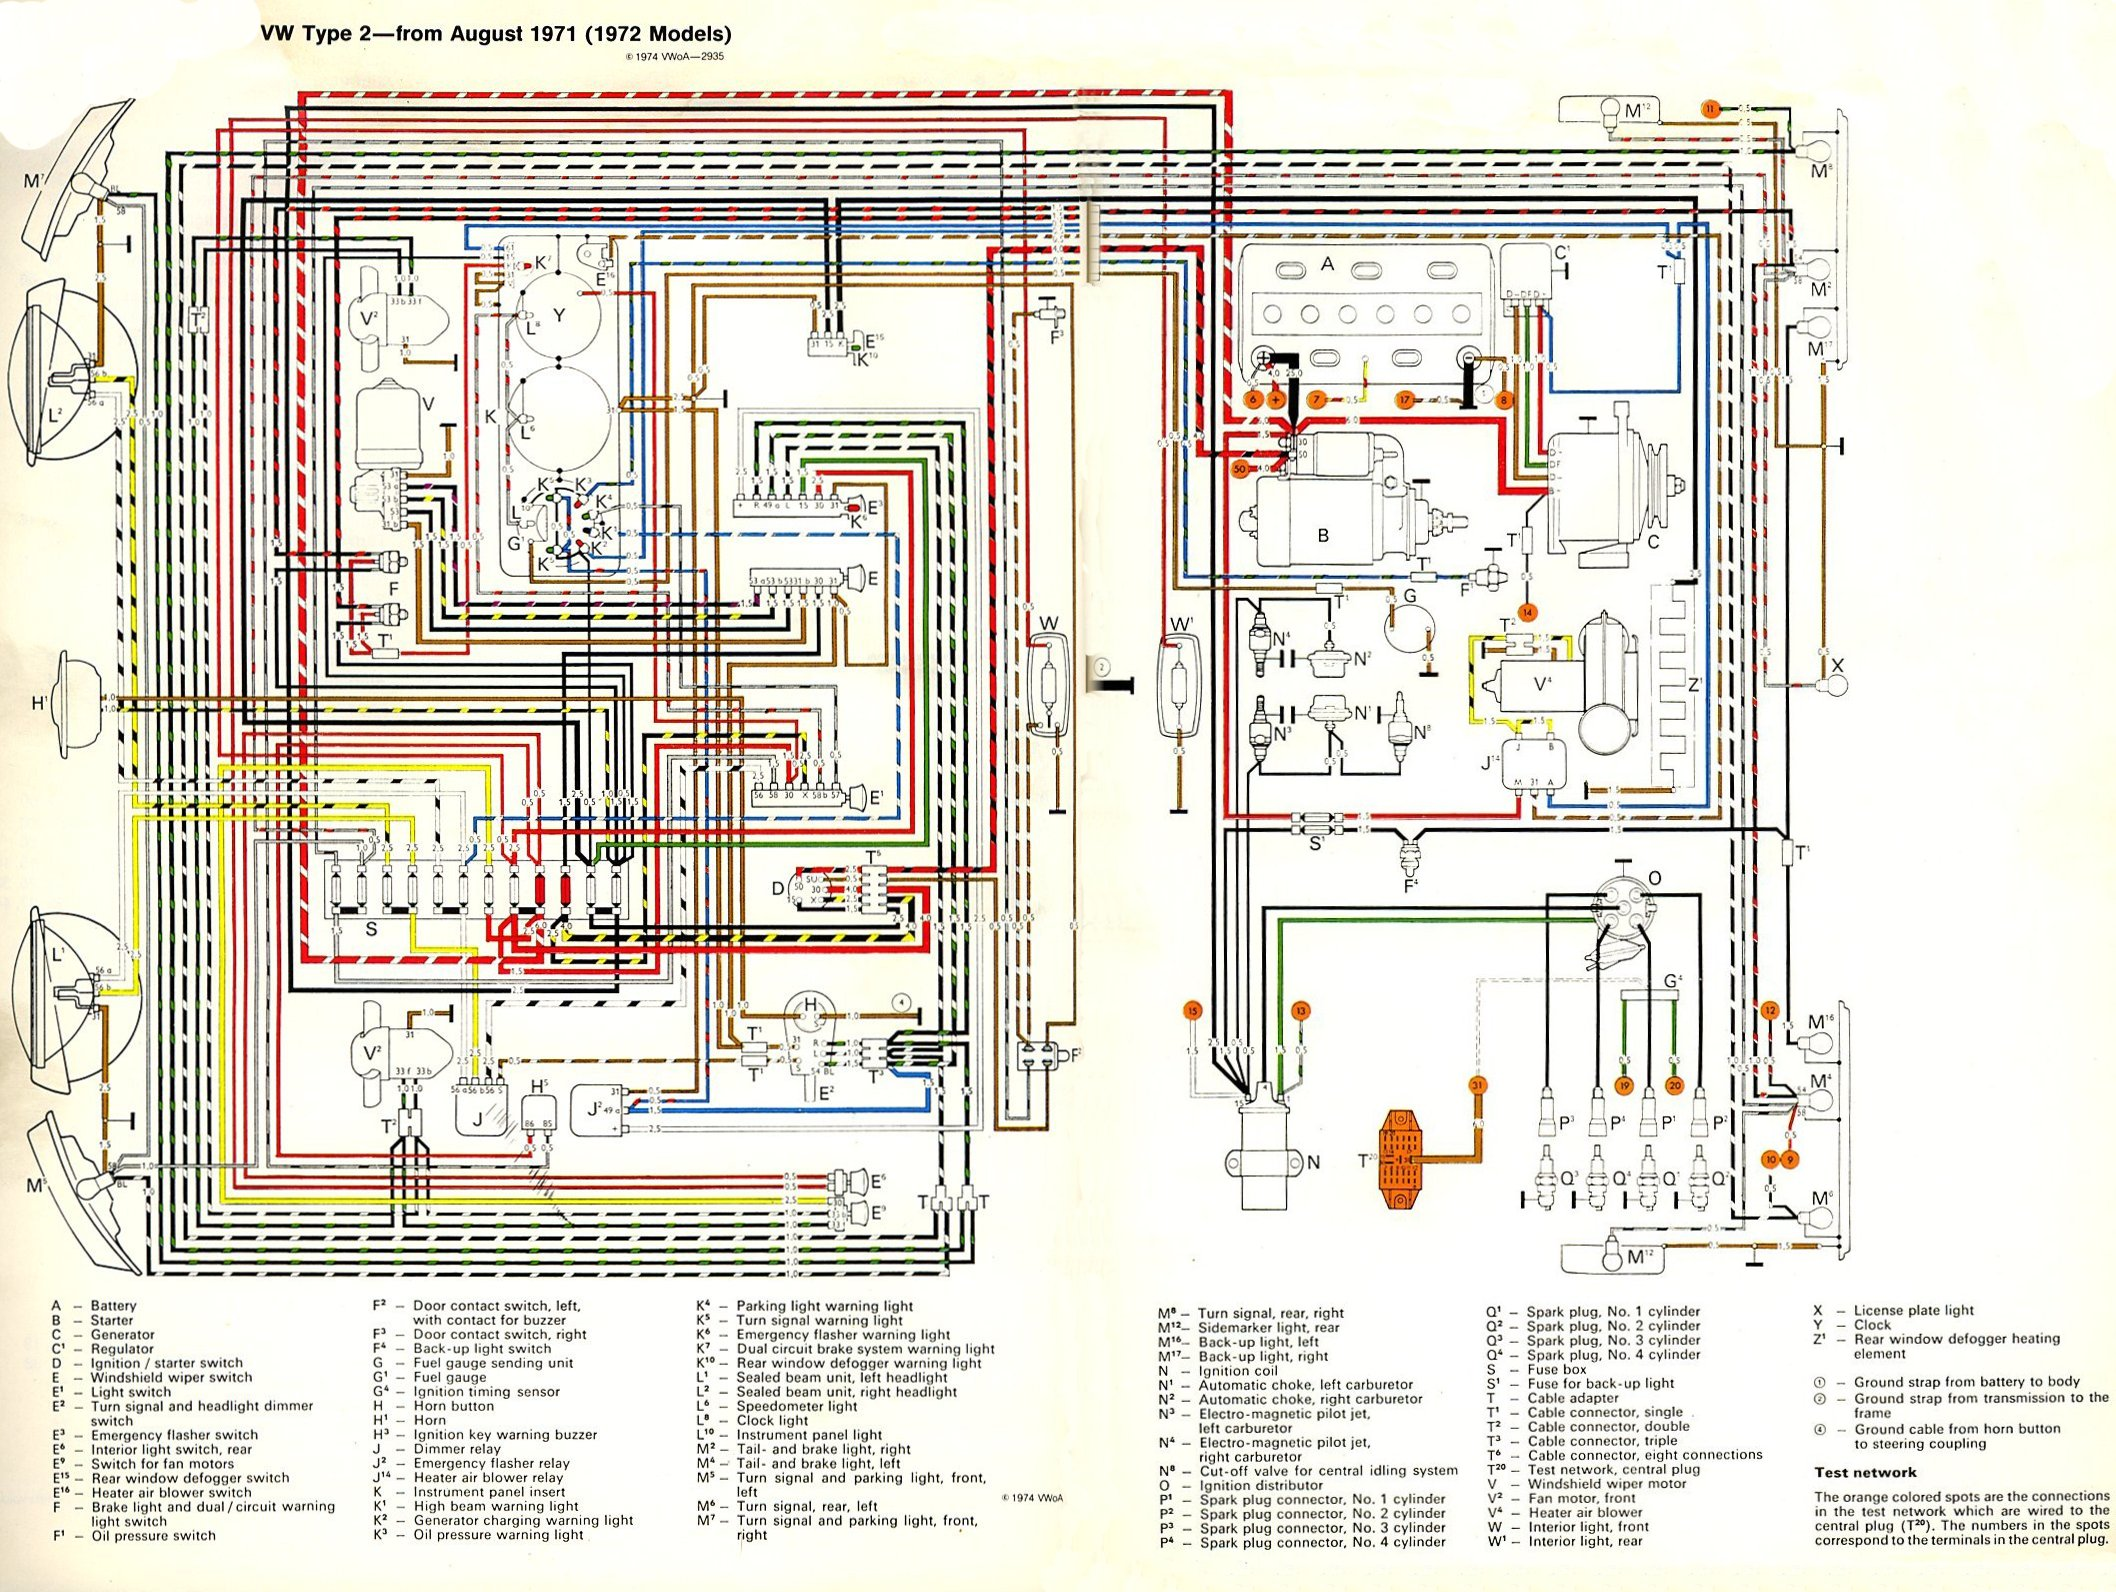 Vw Bus Wiring Diagram Pdf Electrical Diagrams Forum Motor Thesamba Com Type 2